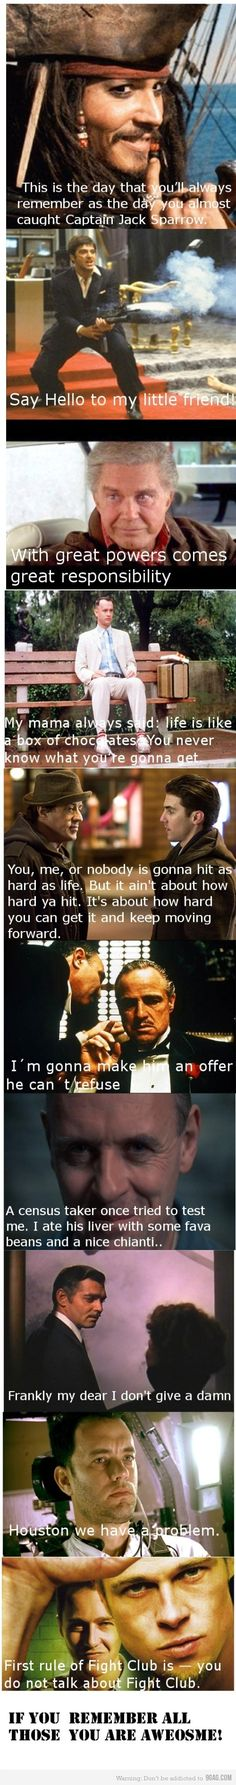 Awesome movie quotes are awesome